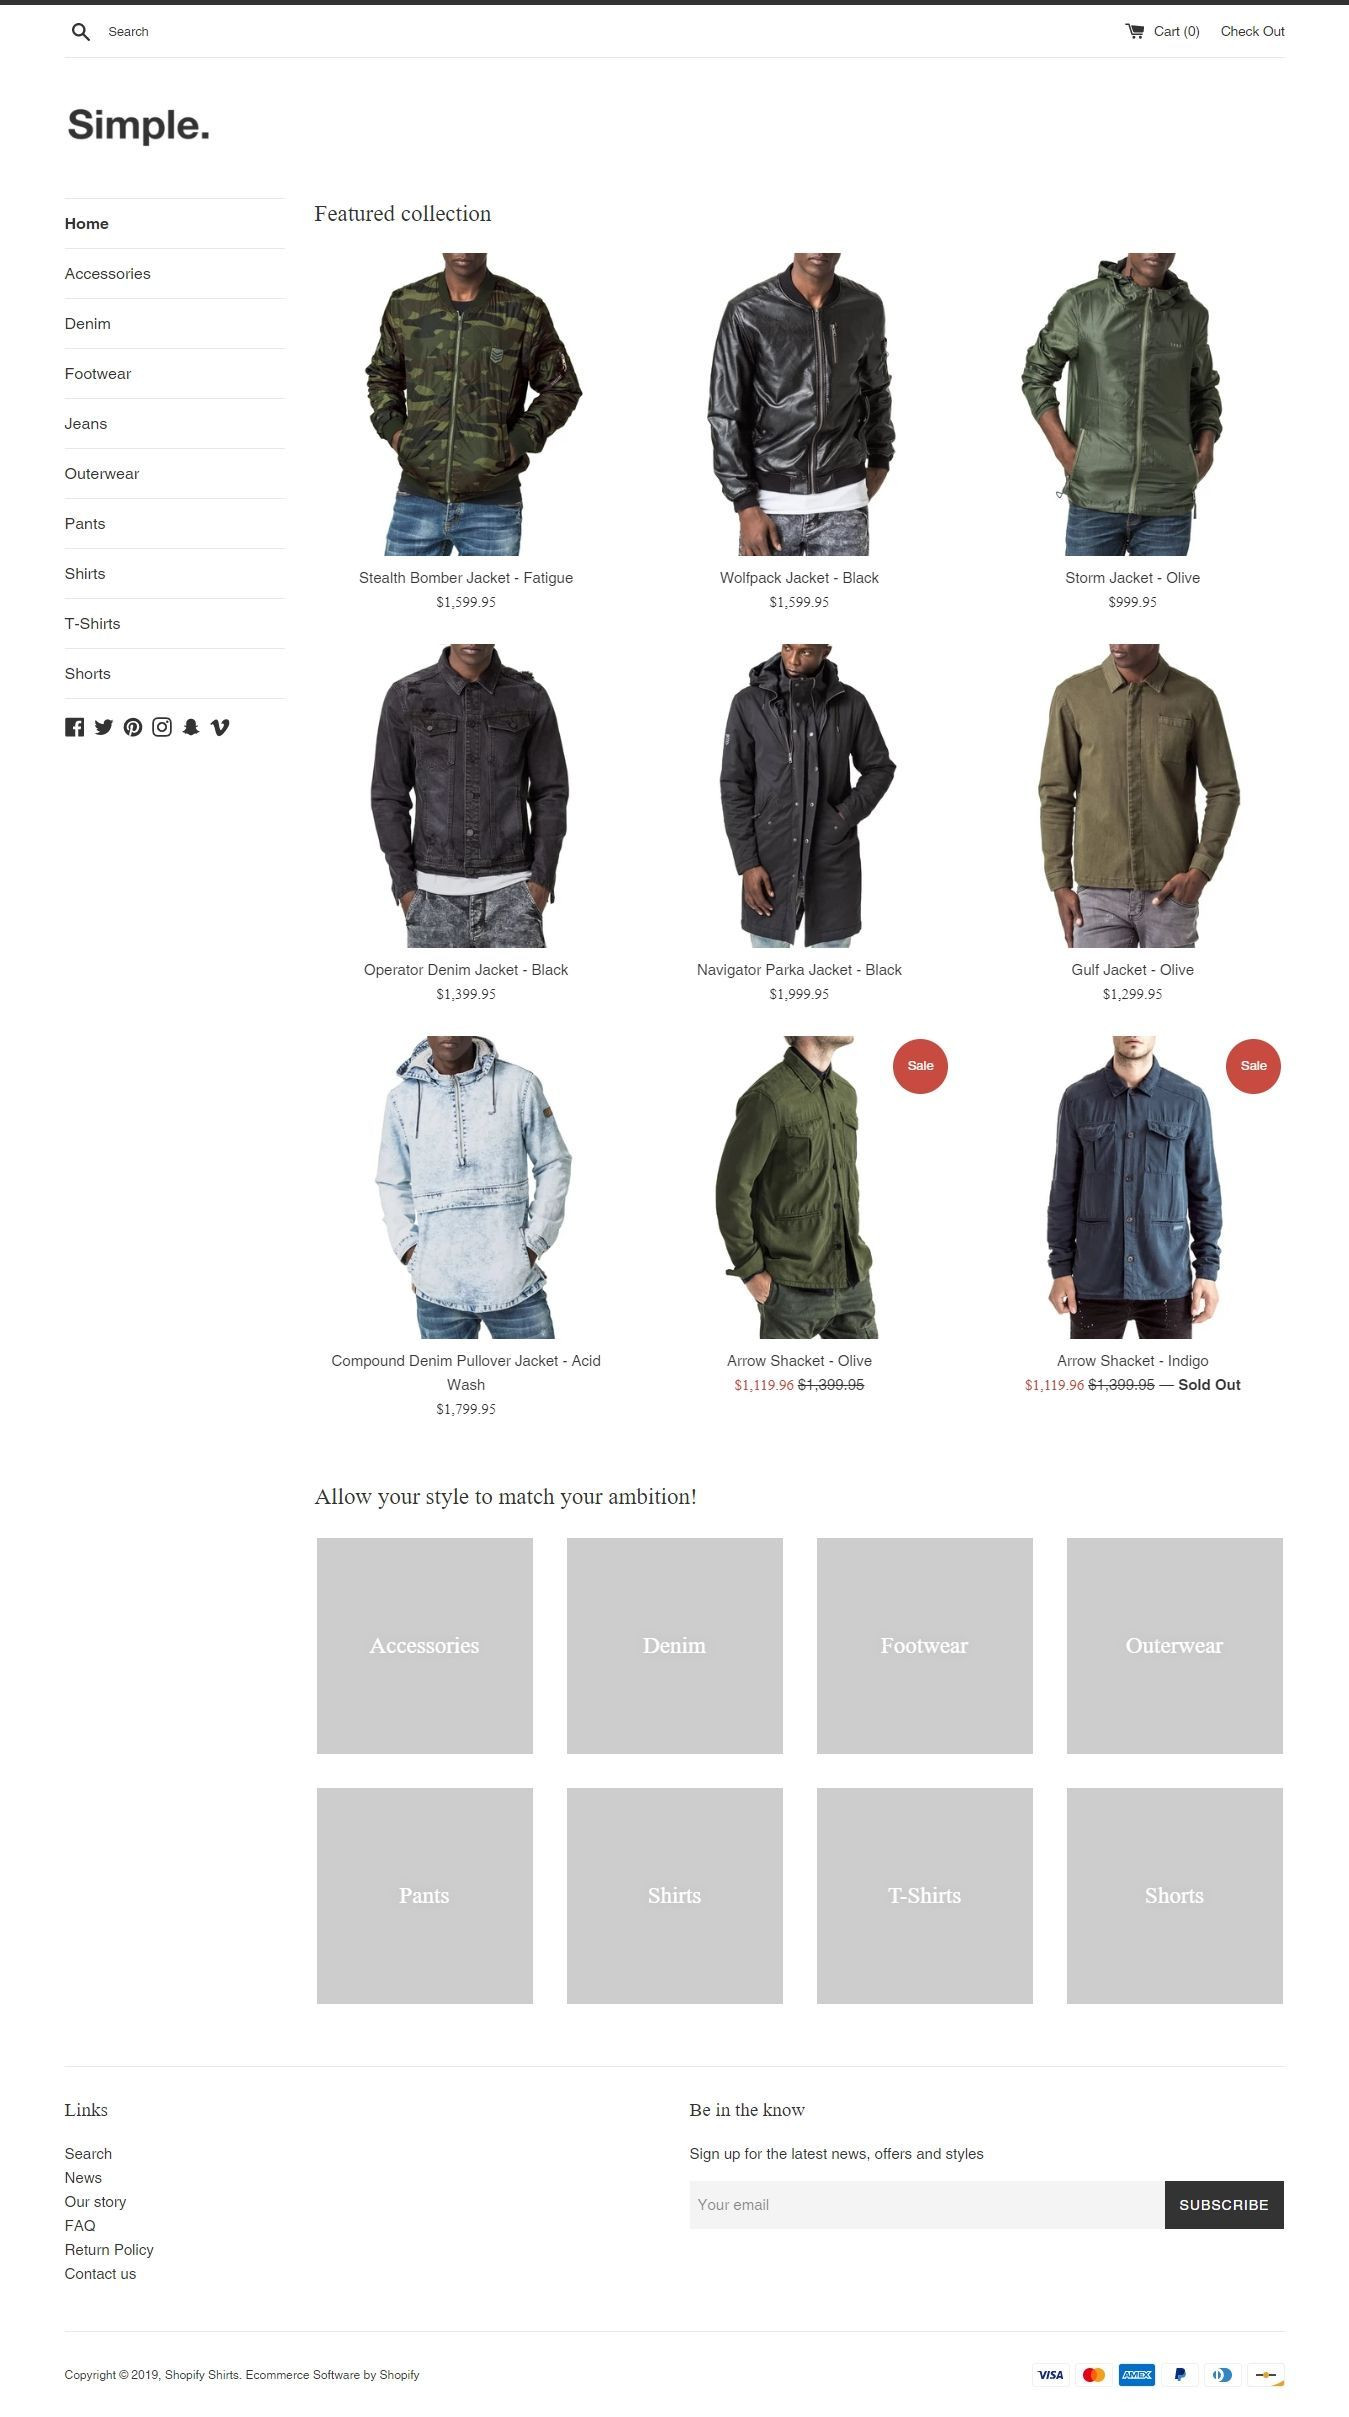 Simple - Free Clean & Minimal Shopify Theme